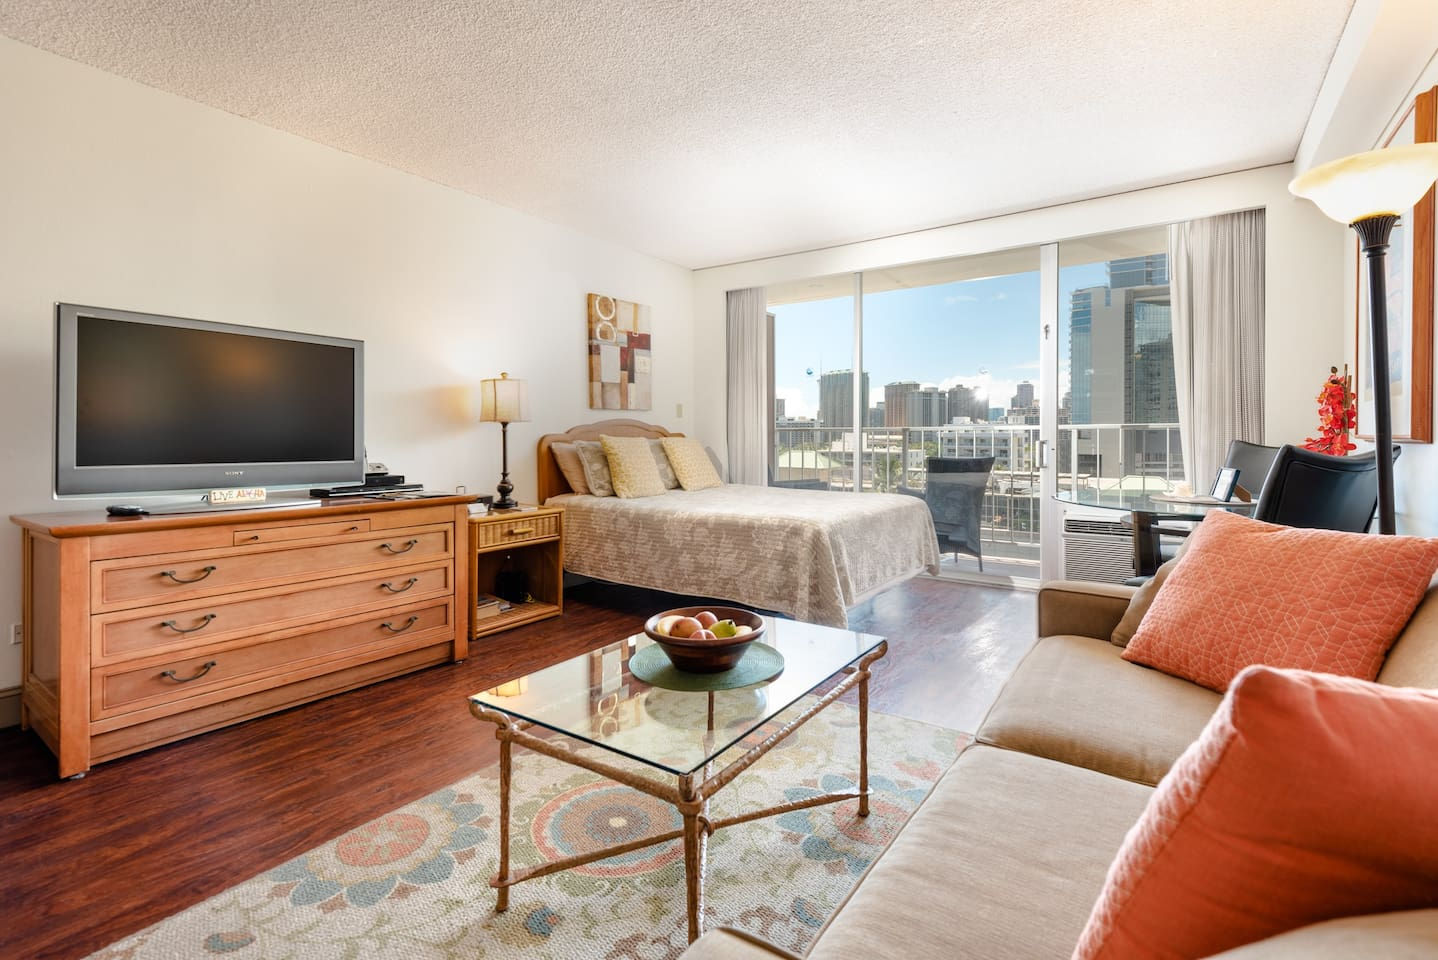 Studio condo with queen bed and full size sofa bed